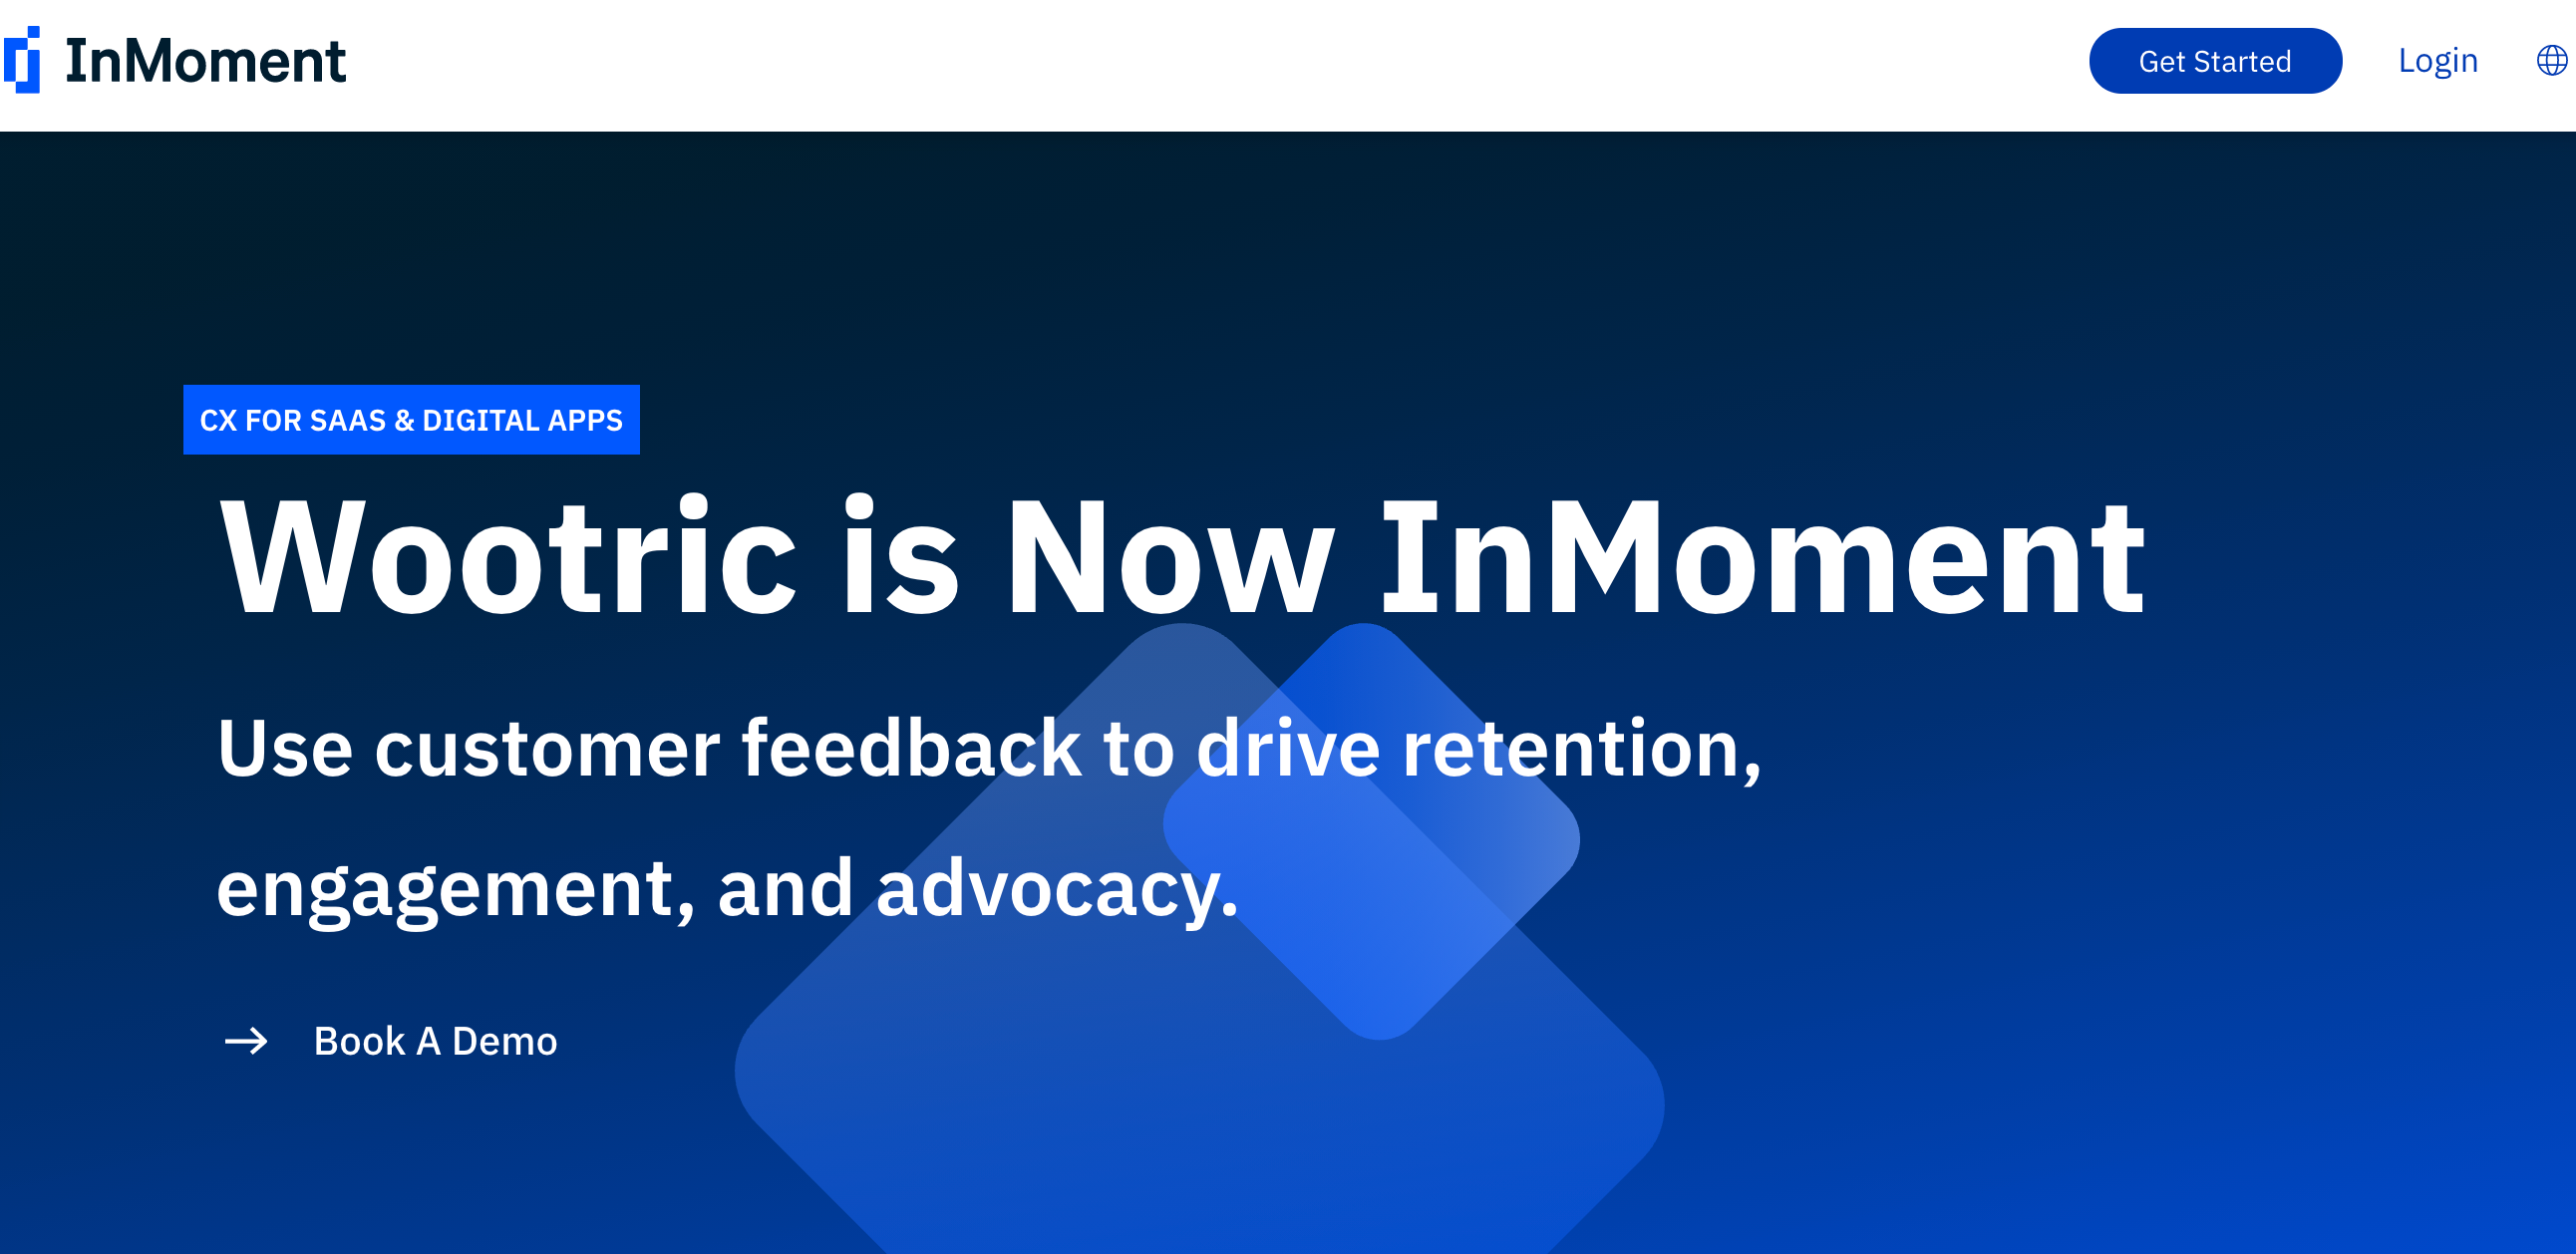 Wootric is an NPS platform that focuses significantly on encouraging customer satisfaction.